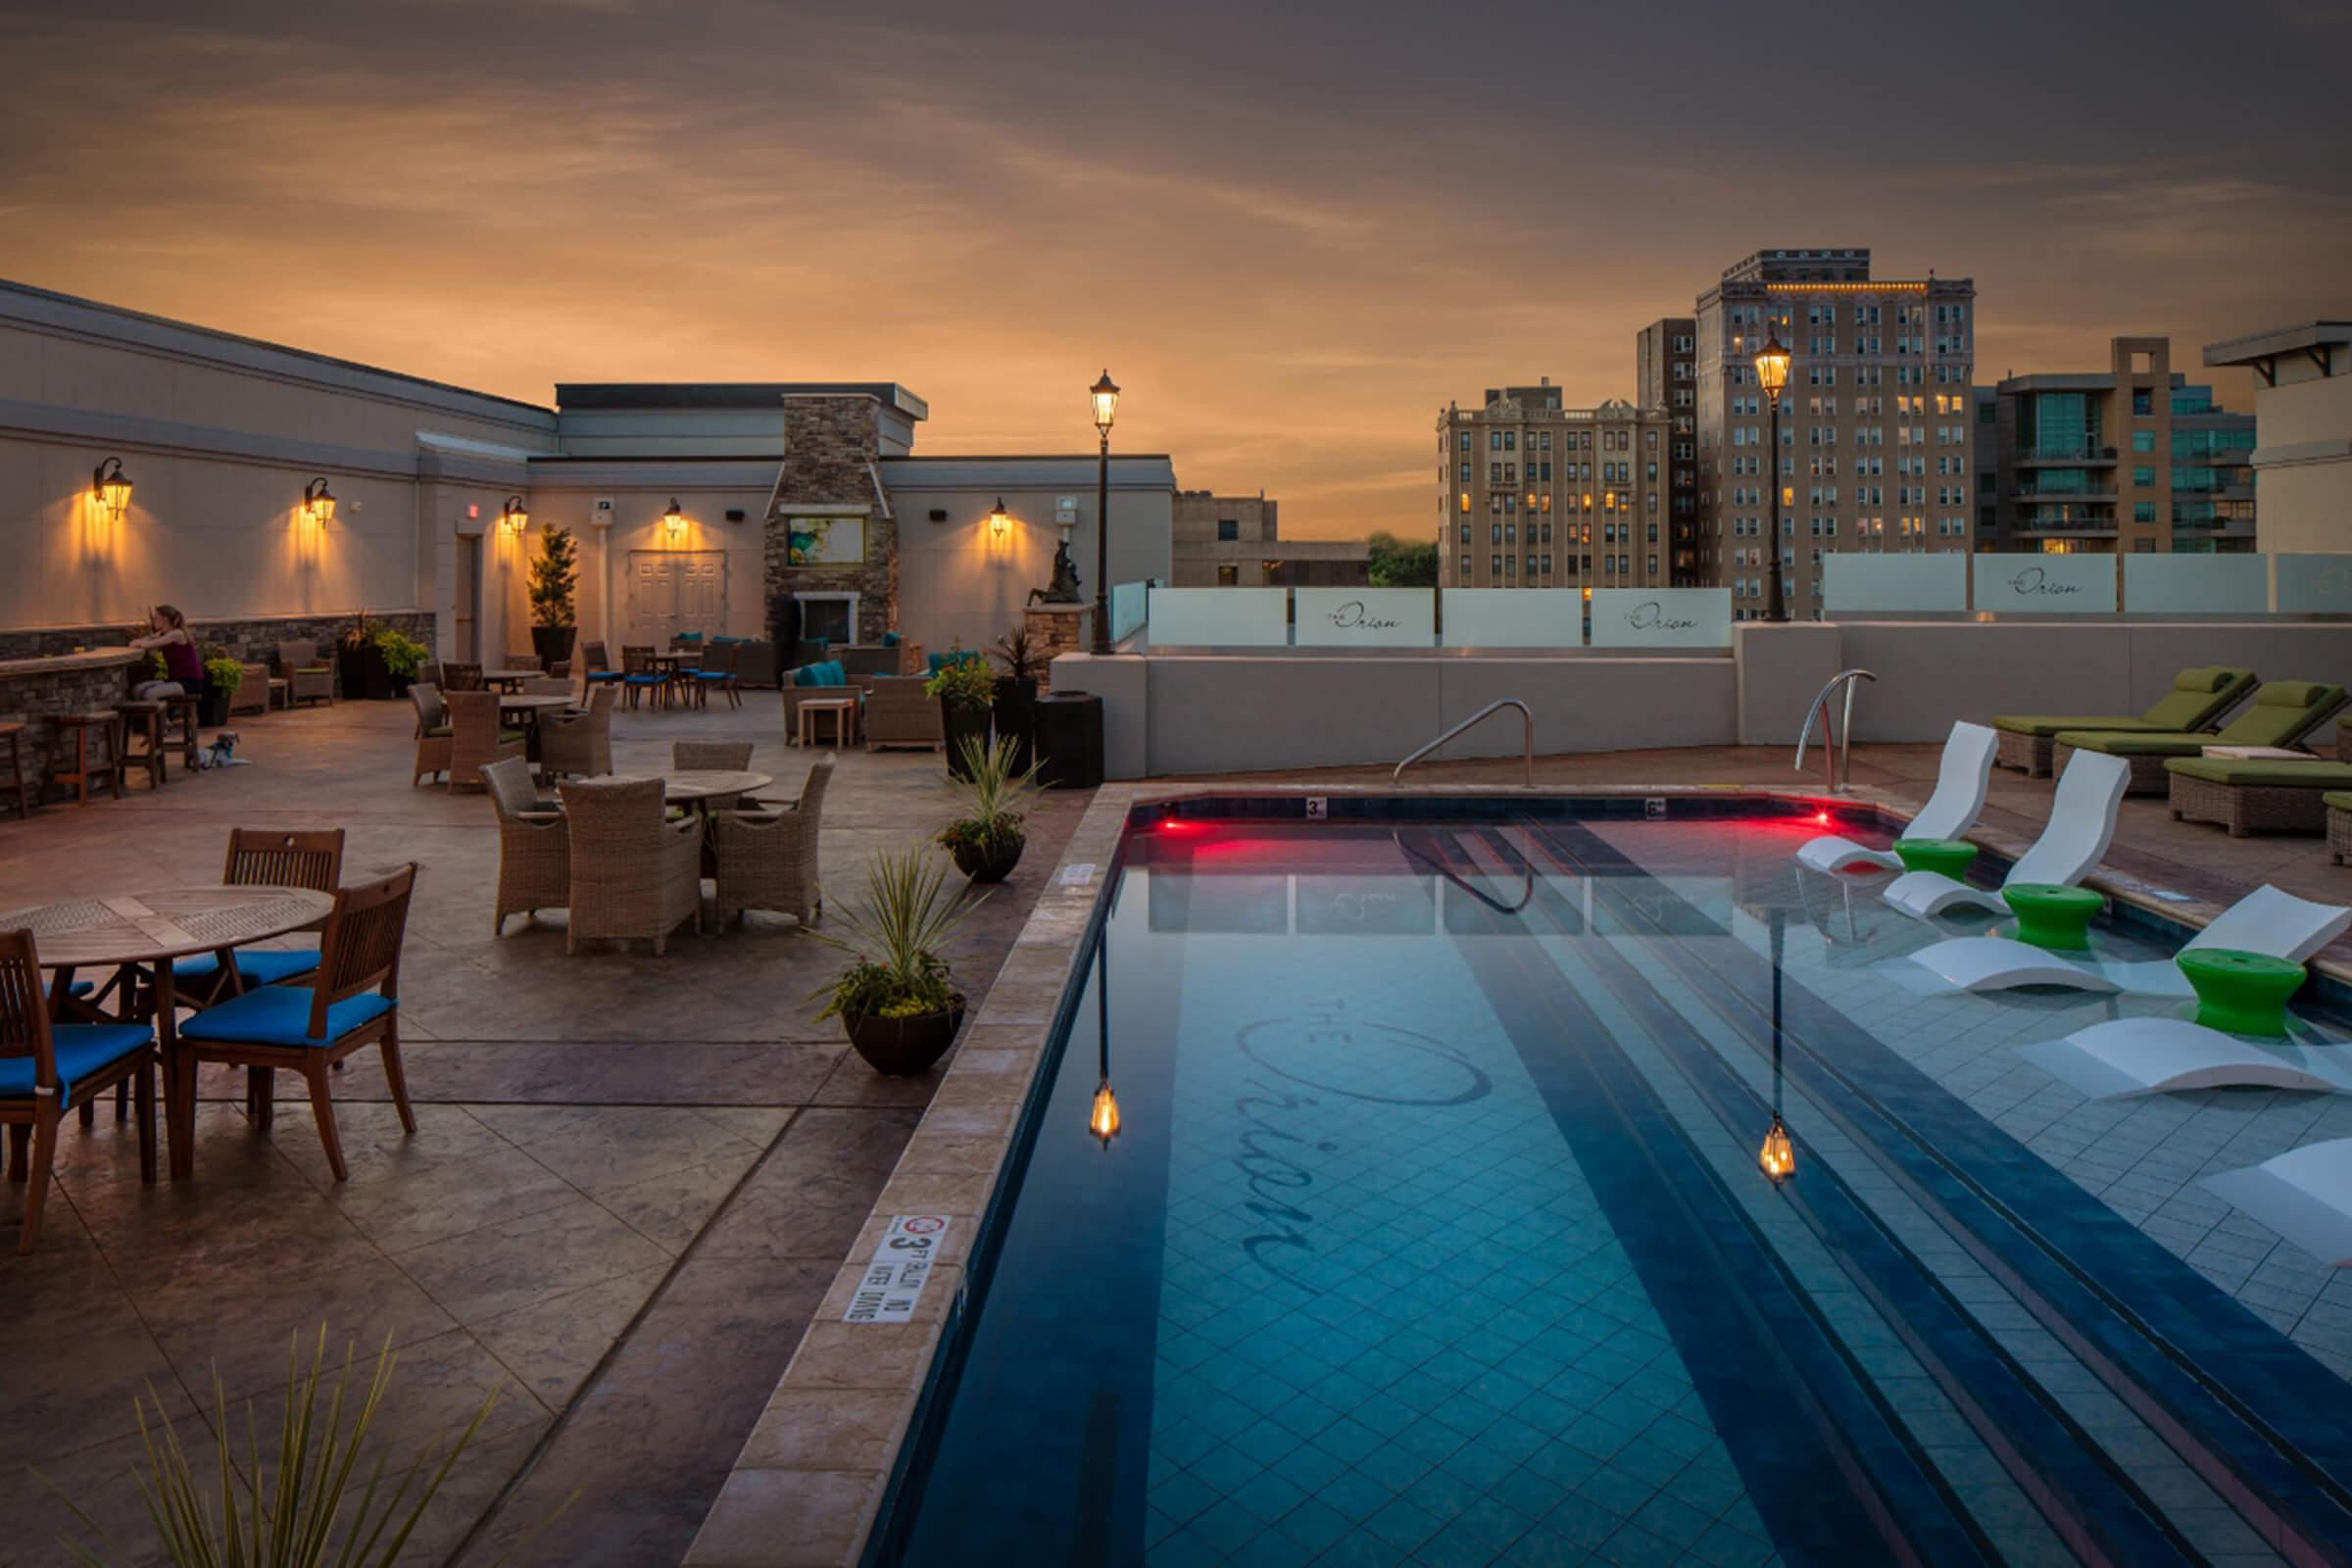 The Orion Apartments in Central West End - St. Louis, MO - Rooftop Swimming Pool 03 (1280x853).jpg